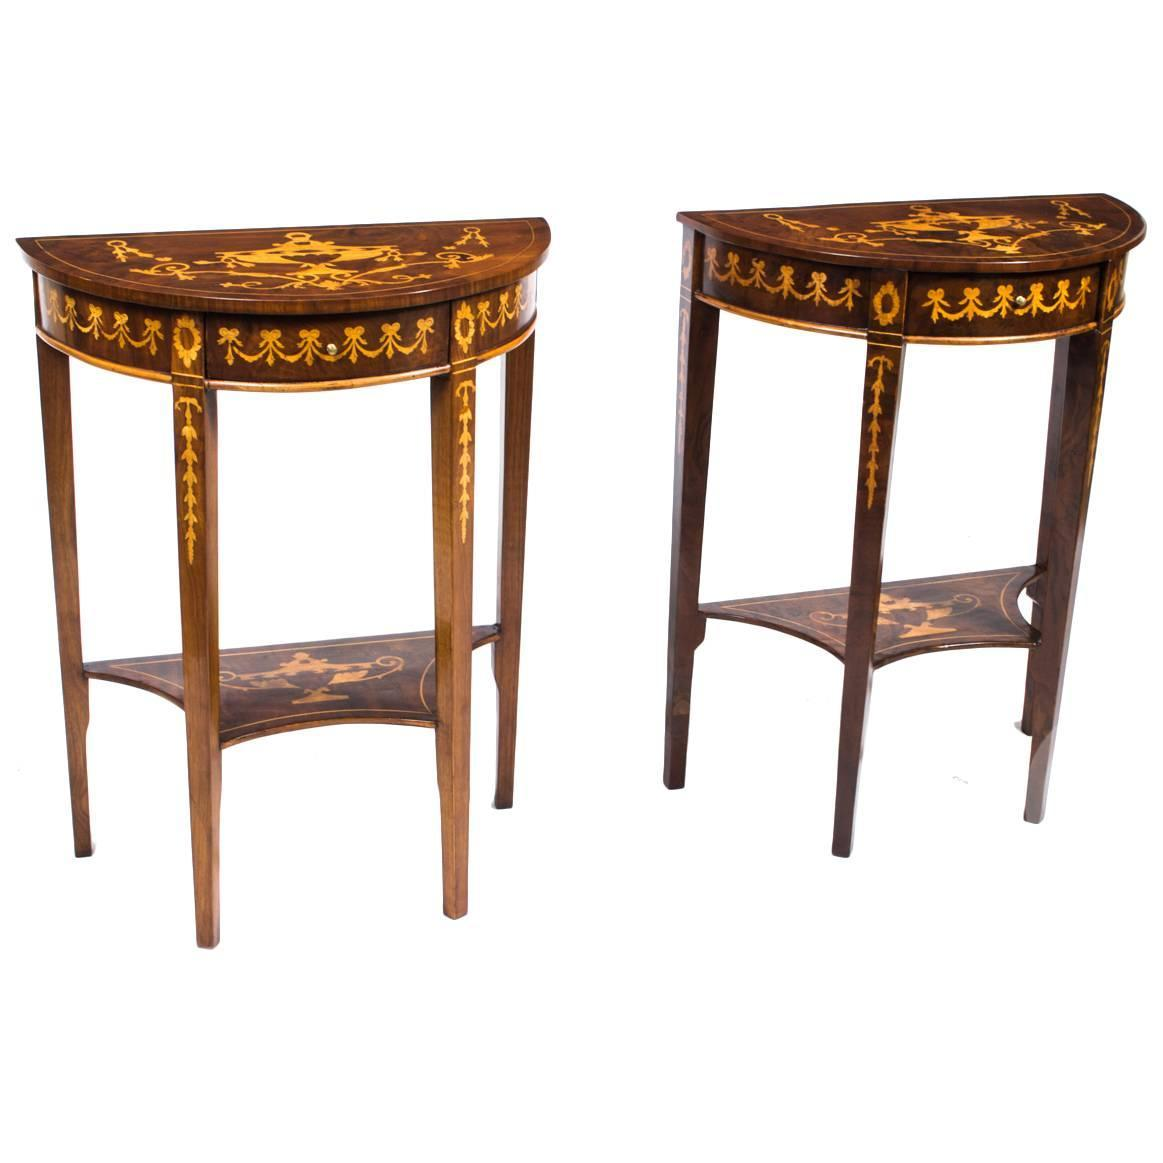 Vintage Pair Of Burr Walnut Half Moon Marquetry Console Tables, 20th  Century For Sale At 1stdibs